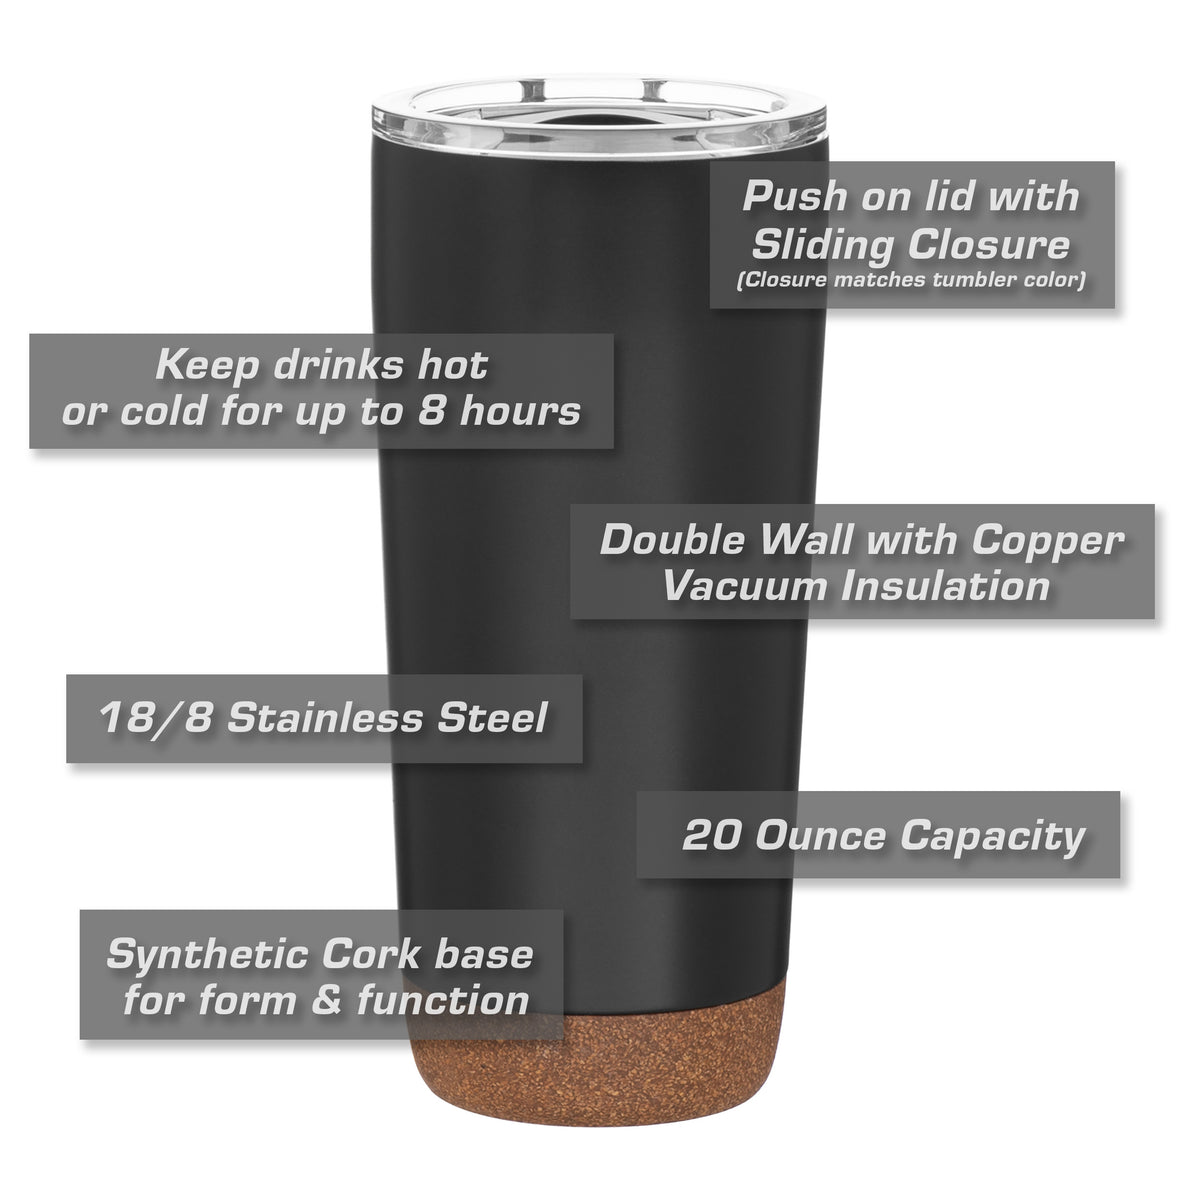 Chevy K10 Cheyenne Truck Insulated Stainless Steel Coffee Tumbler - 20 oz